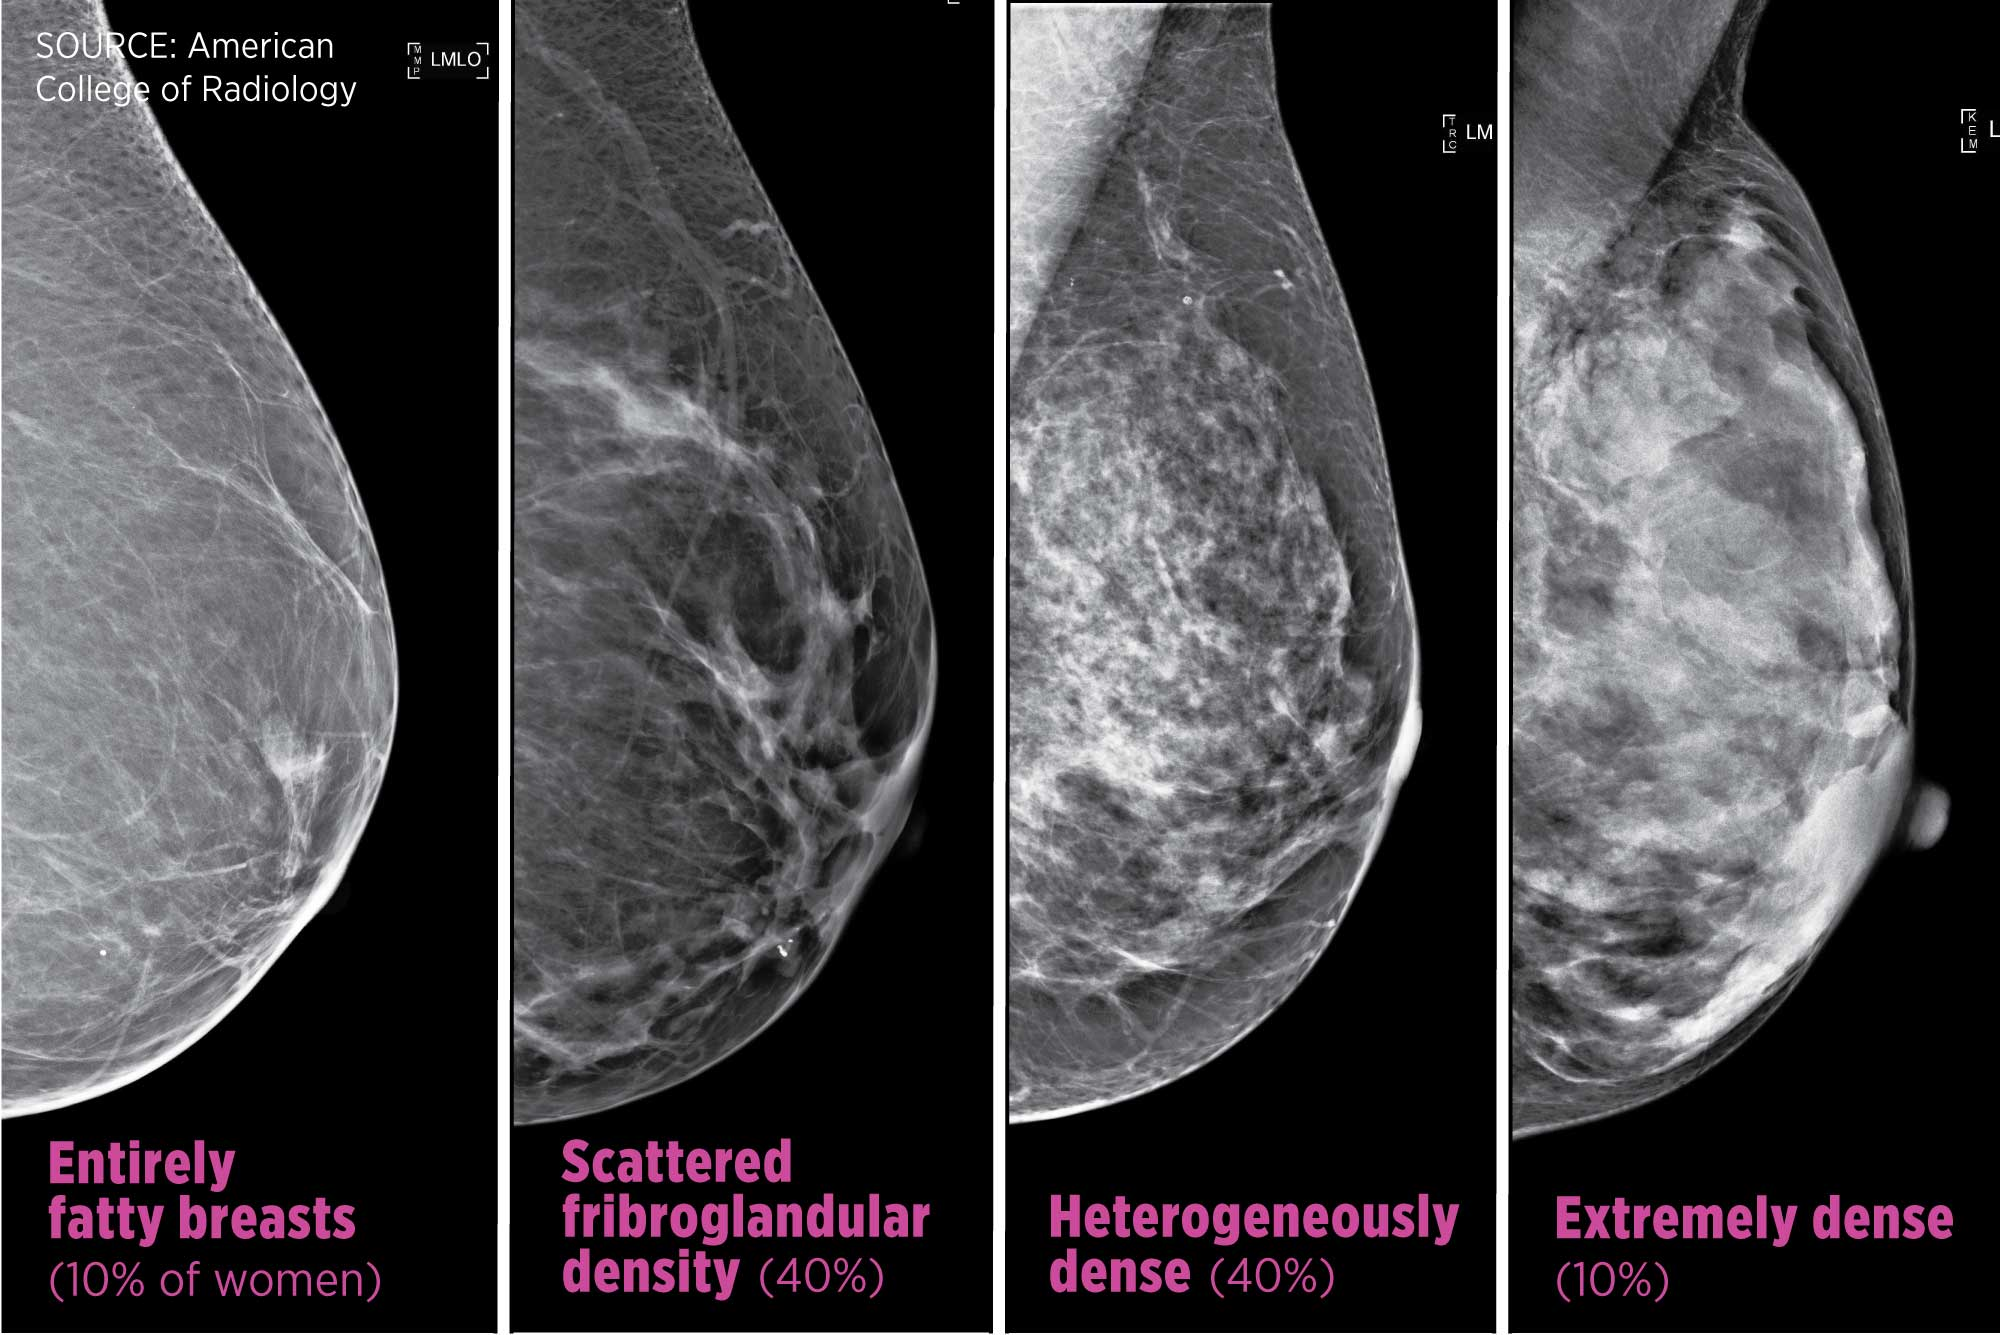 Breast Cancer Density Laws Mean More Tests Unclear Benefit